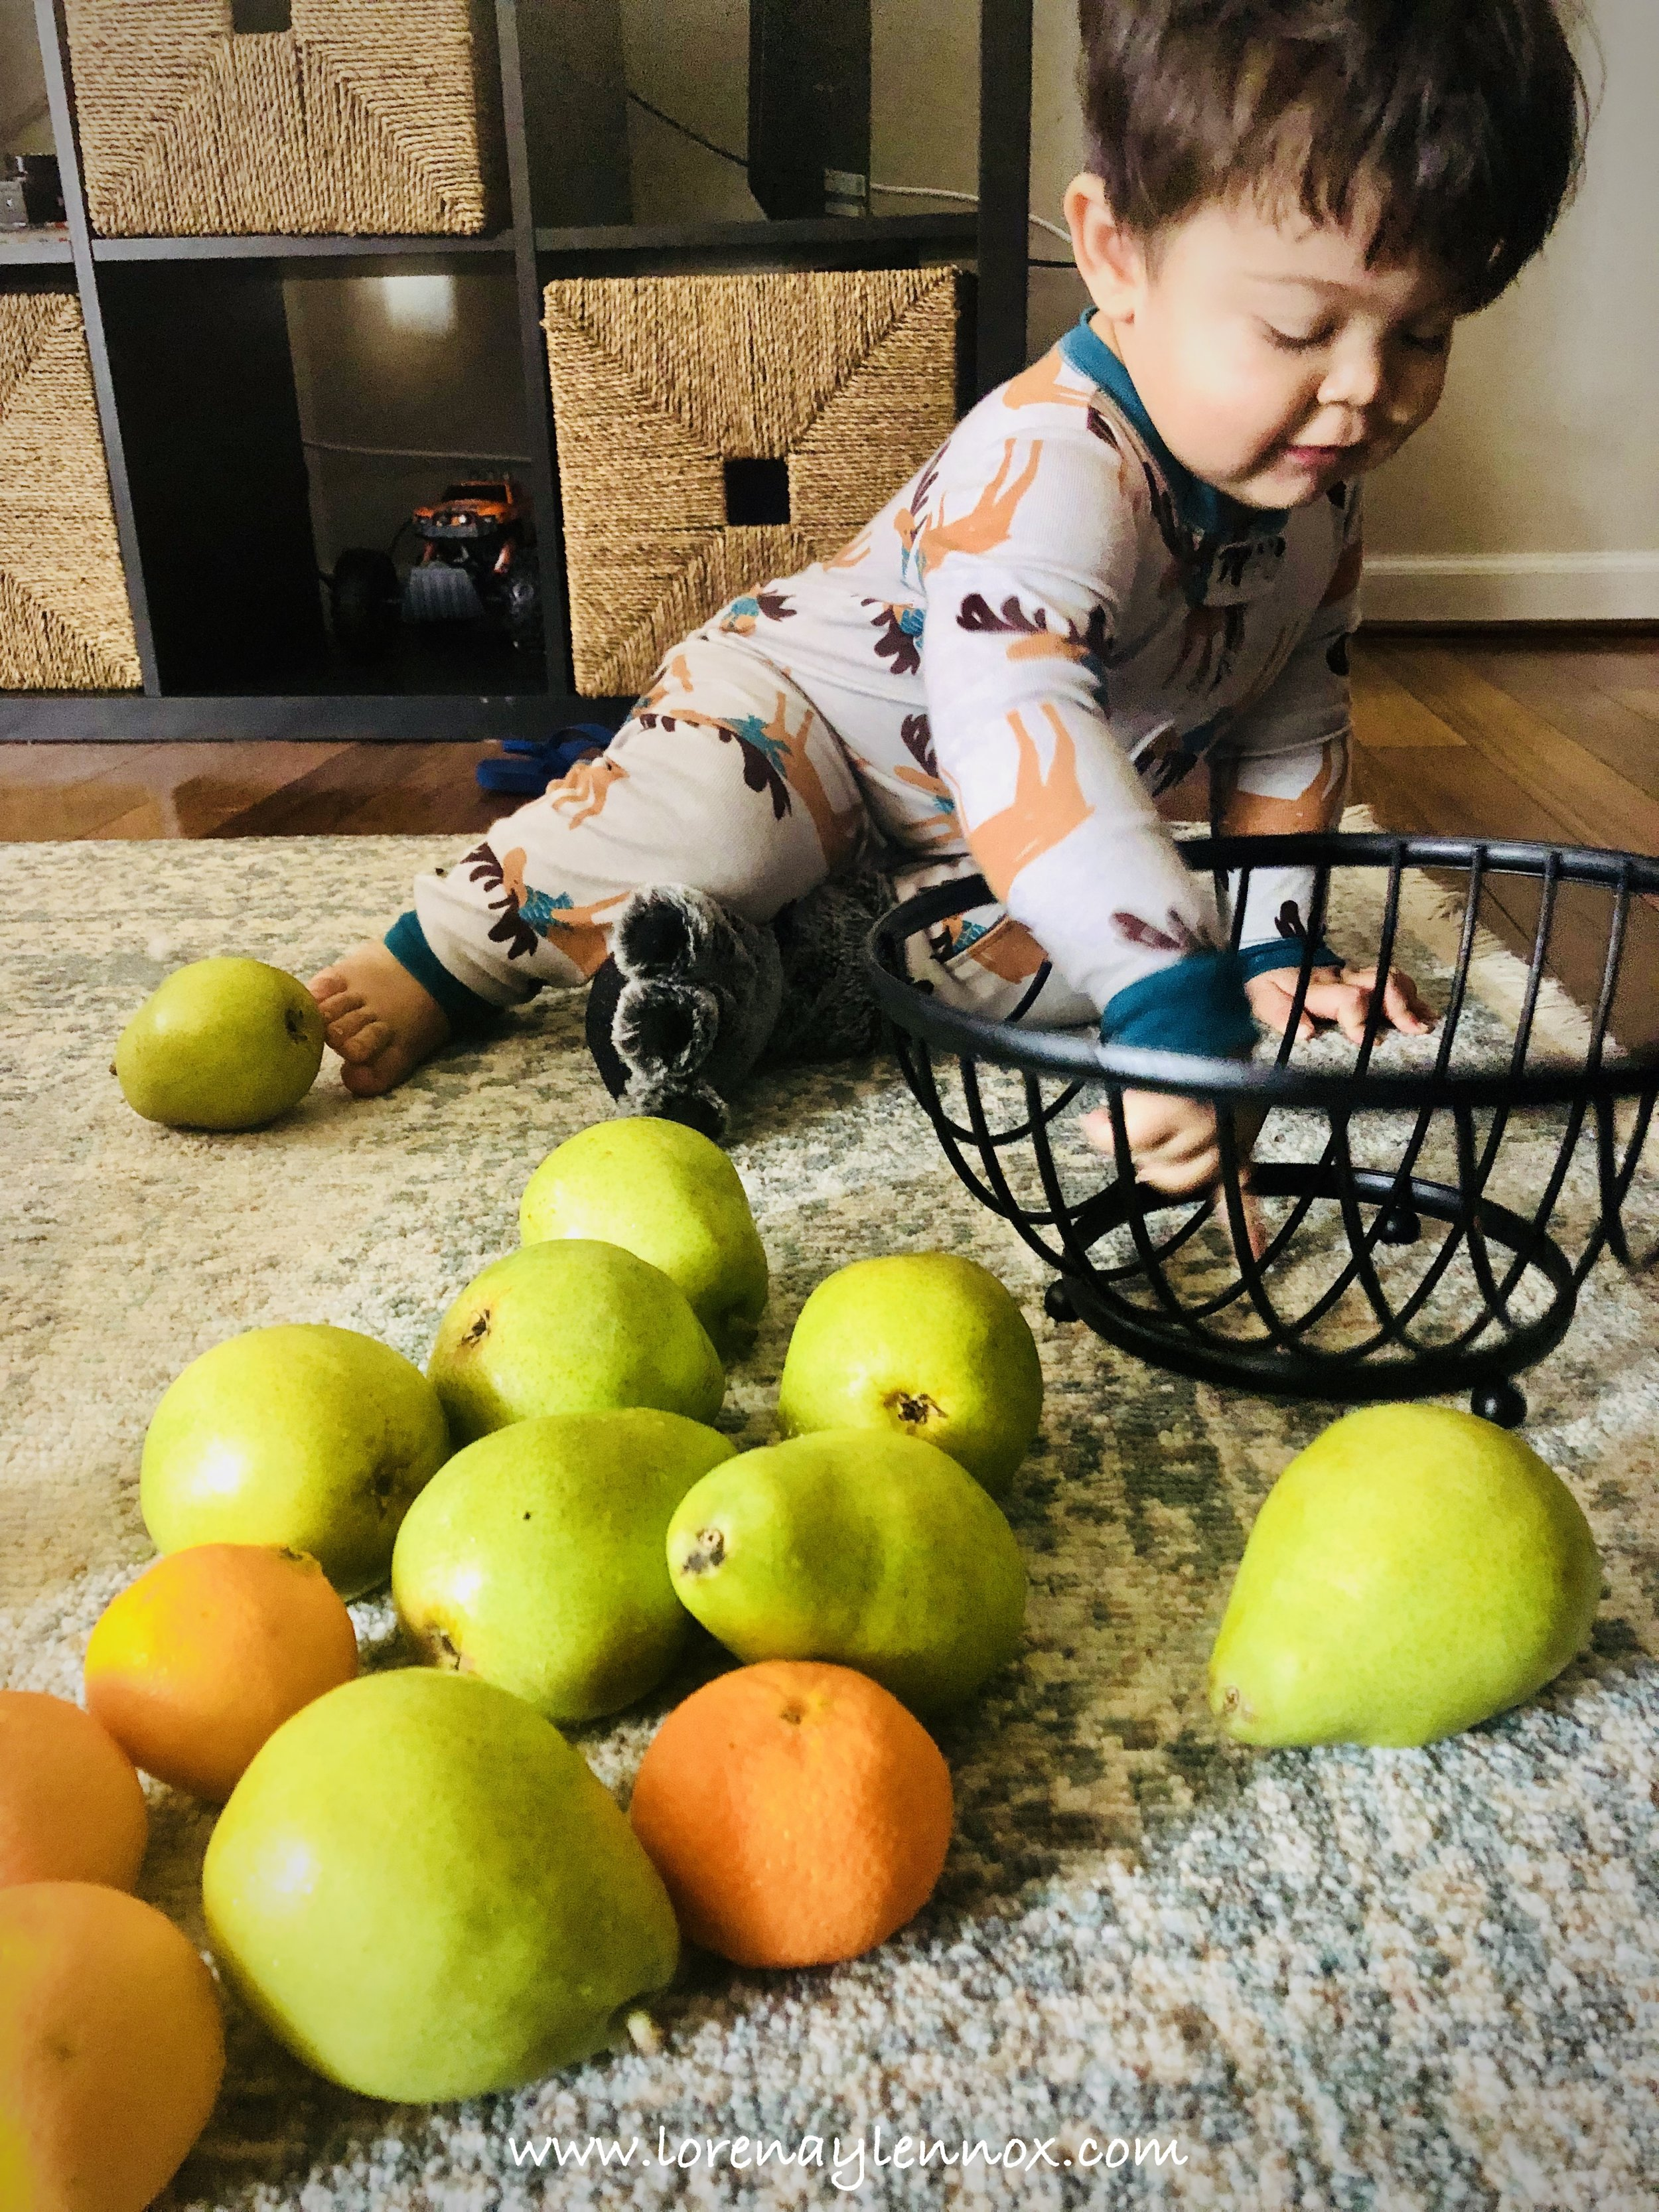 When Lennox teethes, we keep a basket full of non-ripe fruit for him.